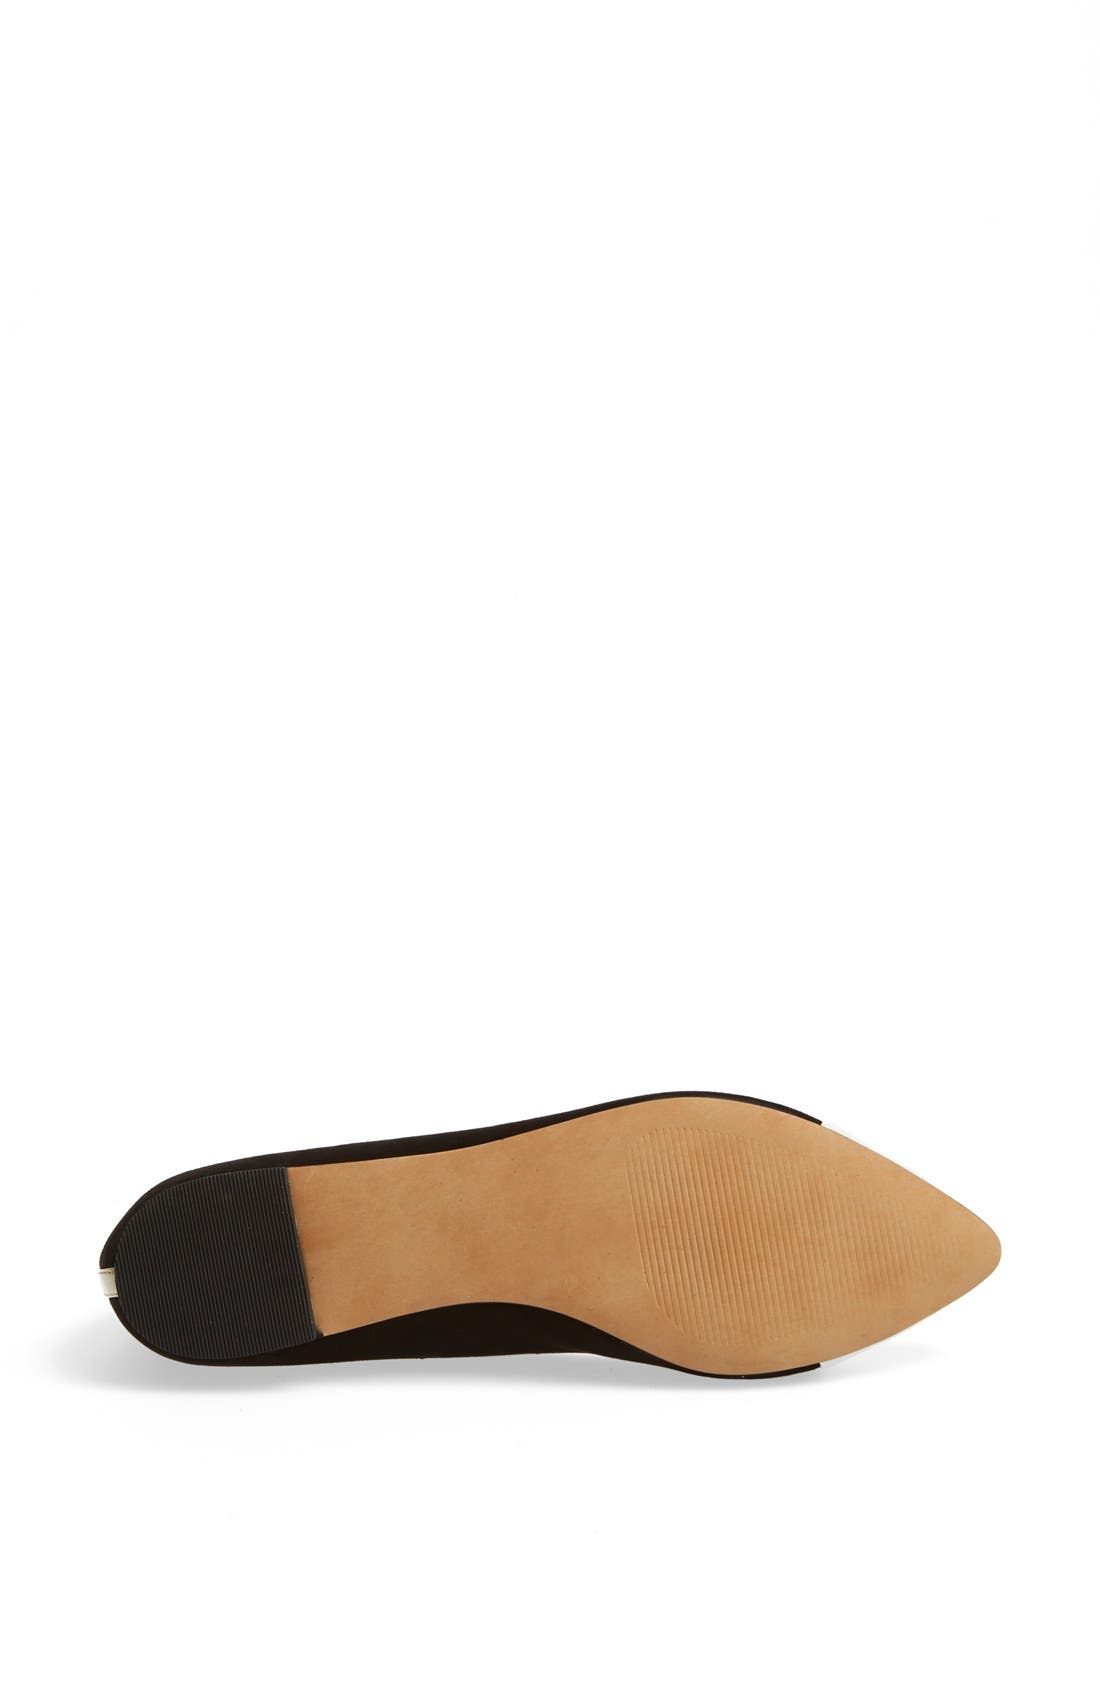 Julianne Hough for Sole Society 'Addy' Flat,                             Alternate thumbnail 5, color,                             001